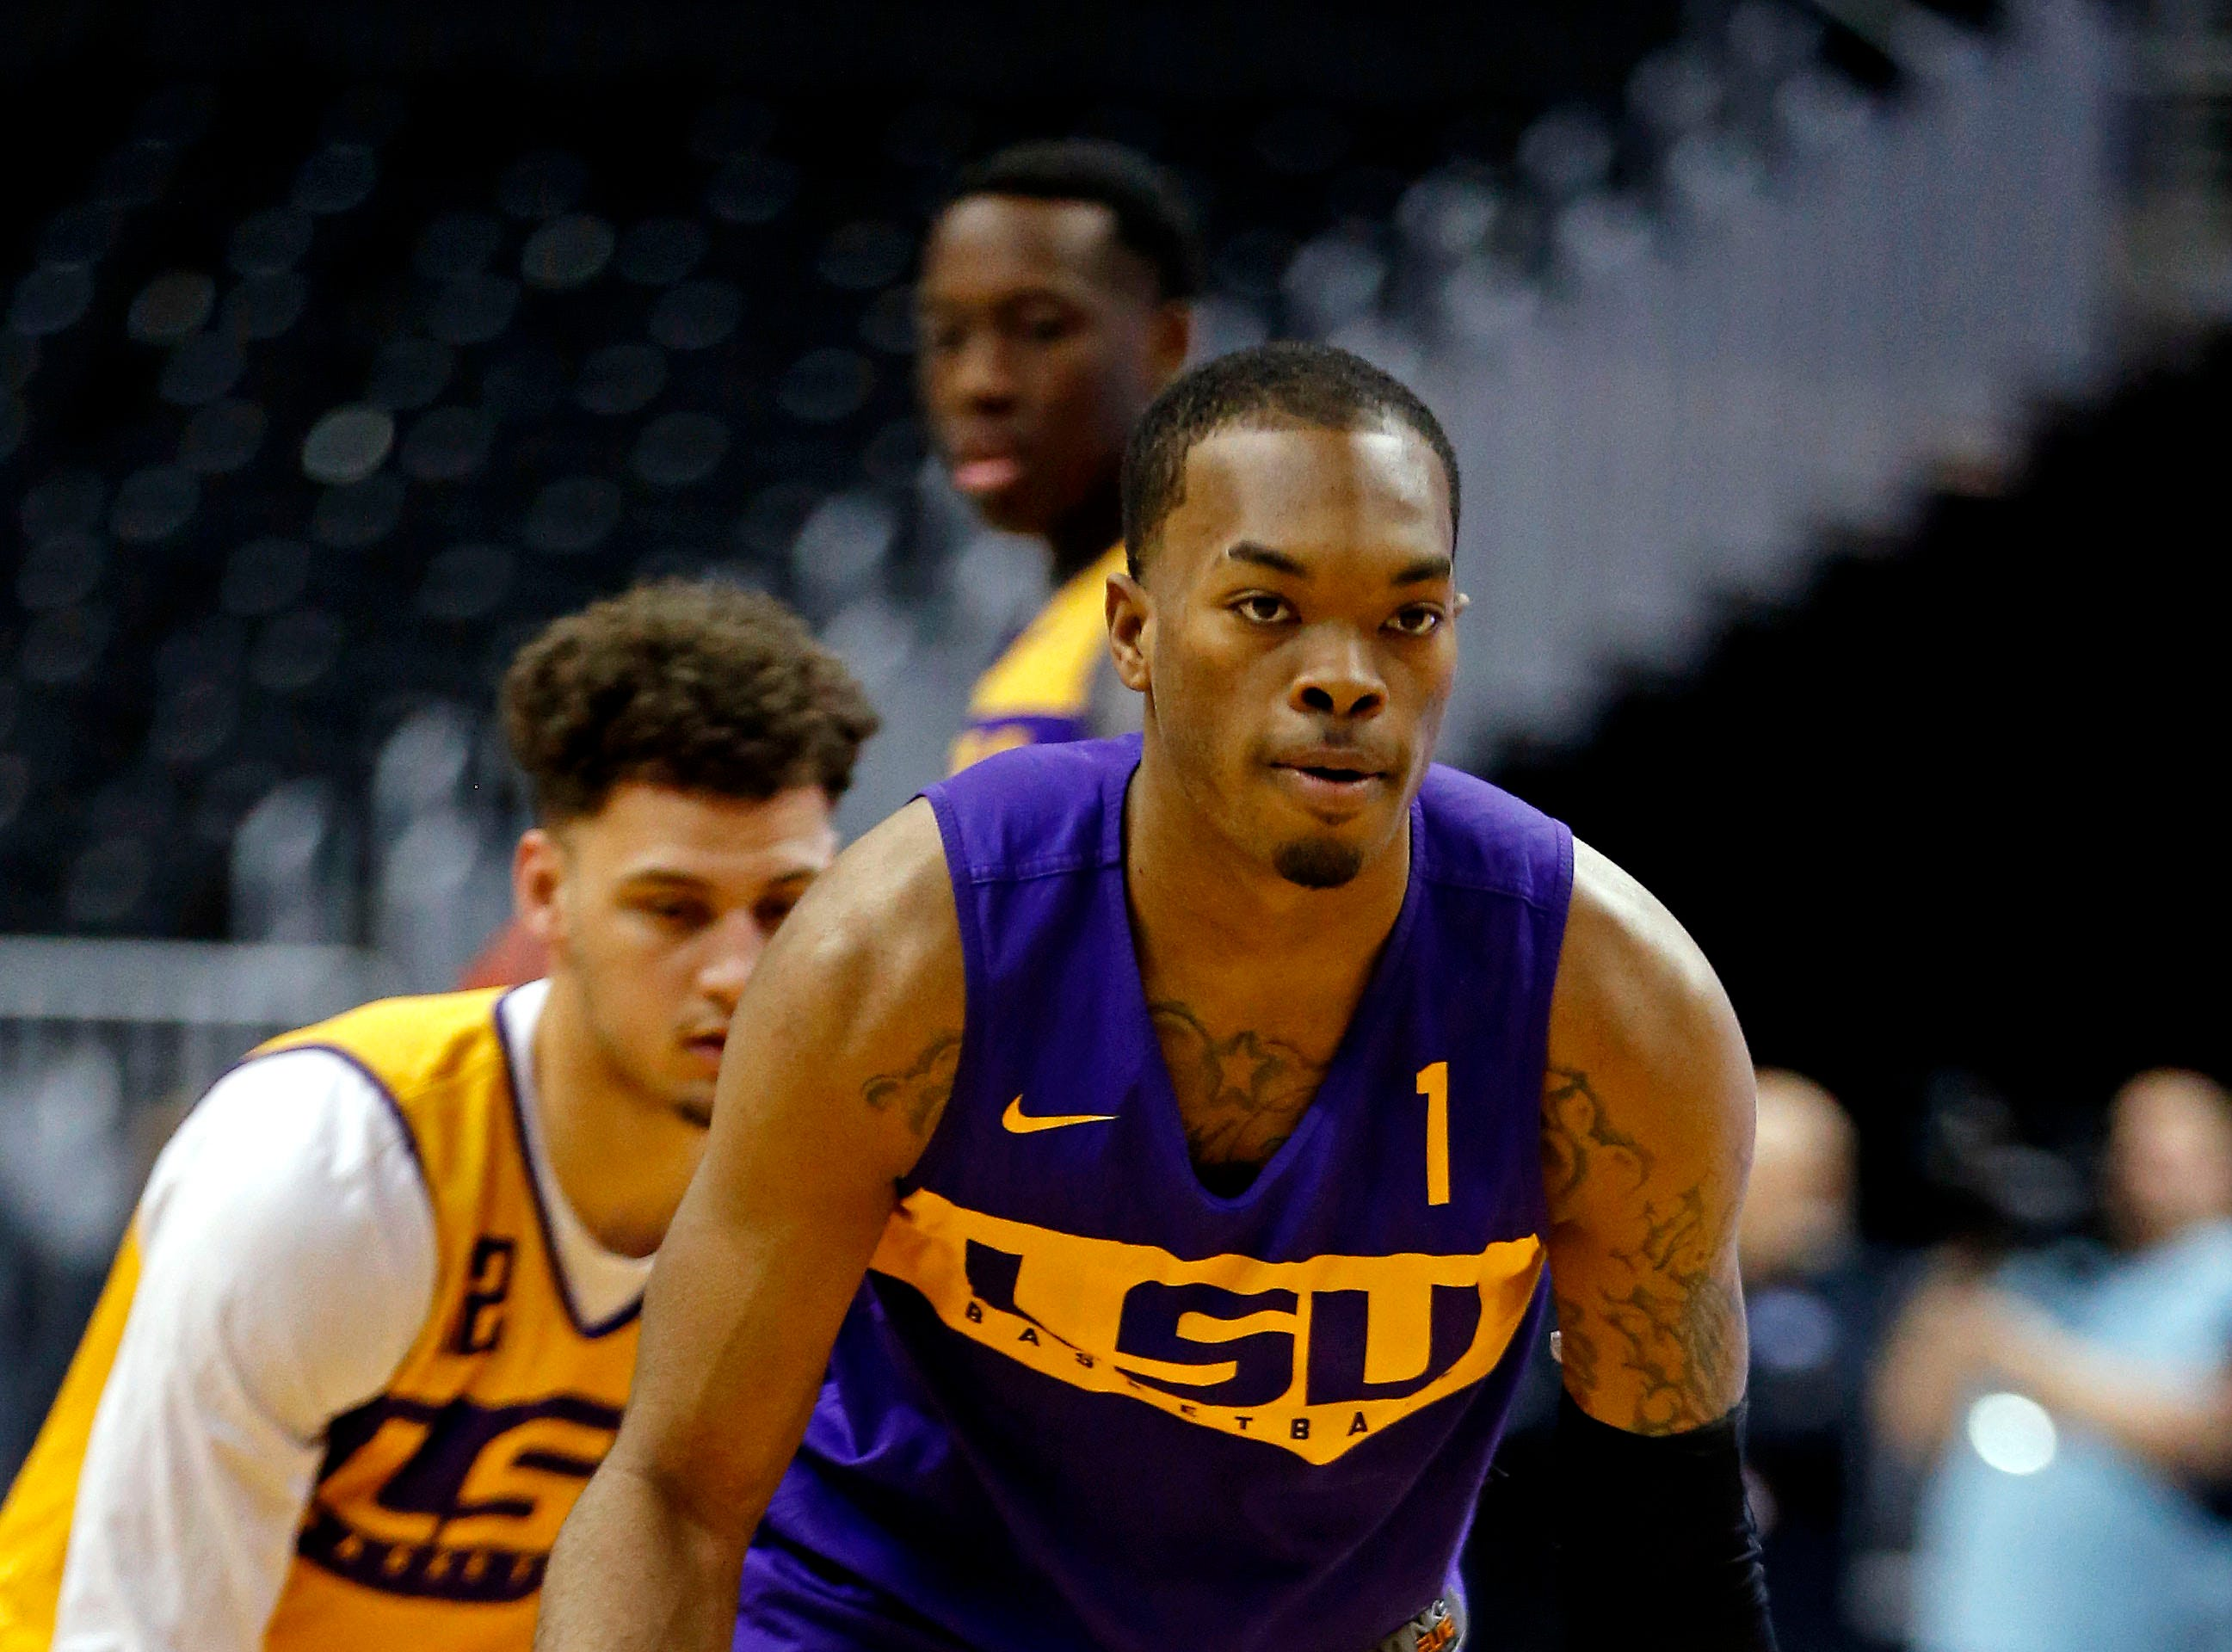 Mar 28, 2019; Washington, DC, USA; LSU Tigers guard Javonte Smart (1) handles the ball during practice for the east regional of the 2019 NCAA Tournament at Capital One Arena. Mandatory Credit: Amber Searls-USA TODAY Sports